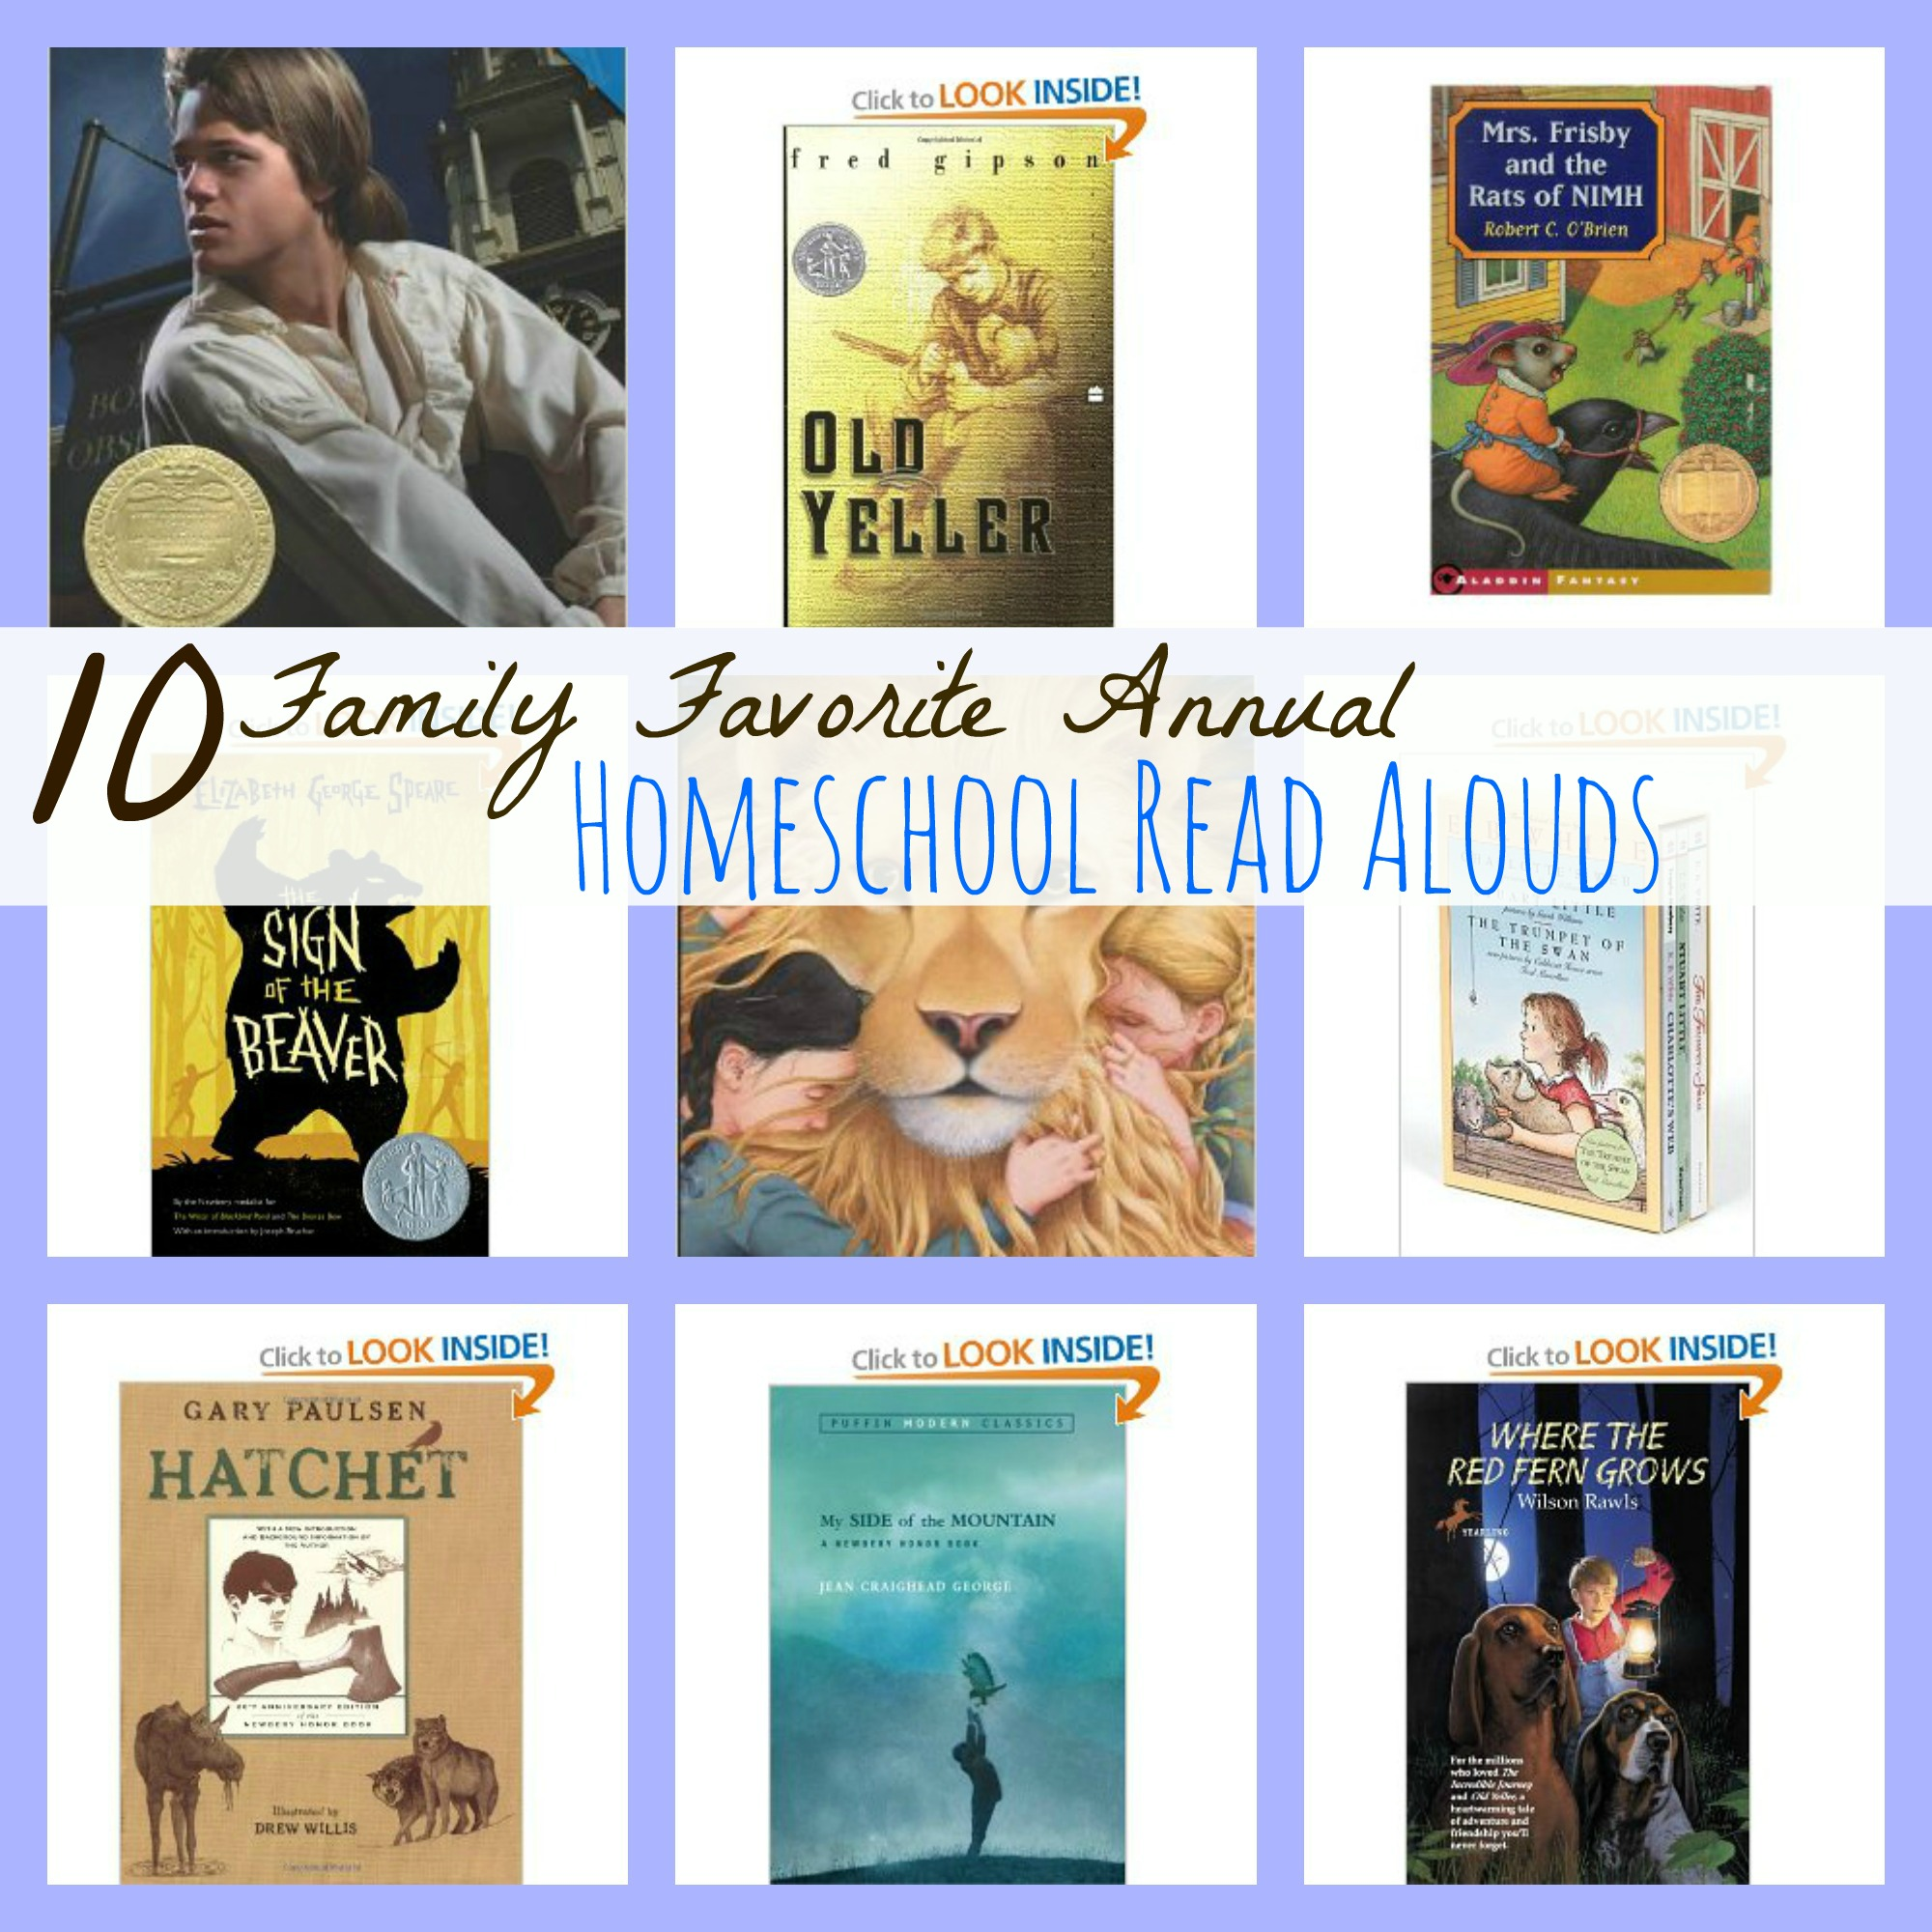 Must Read Homeschool Articles For Encouragement And: 10 Family Favorite Annual Homeschool Read Alouds